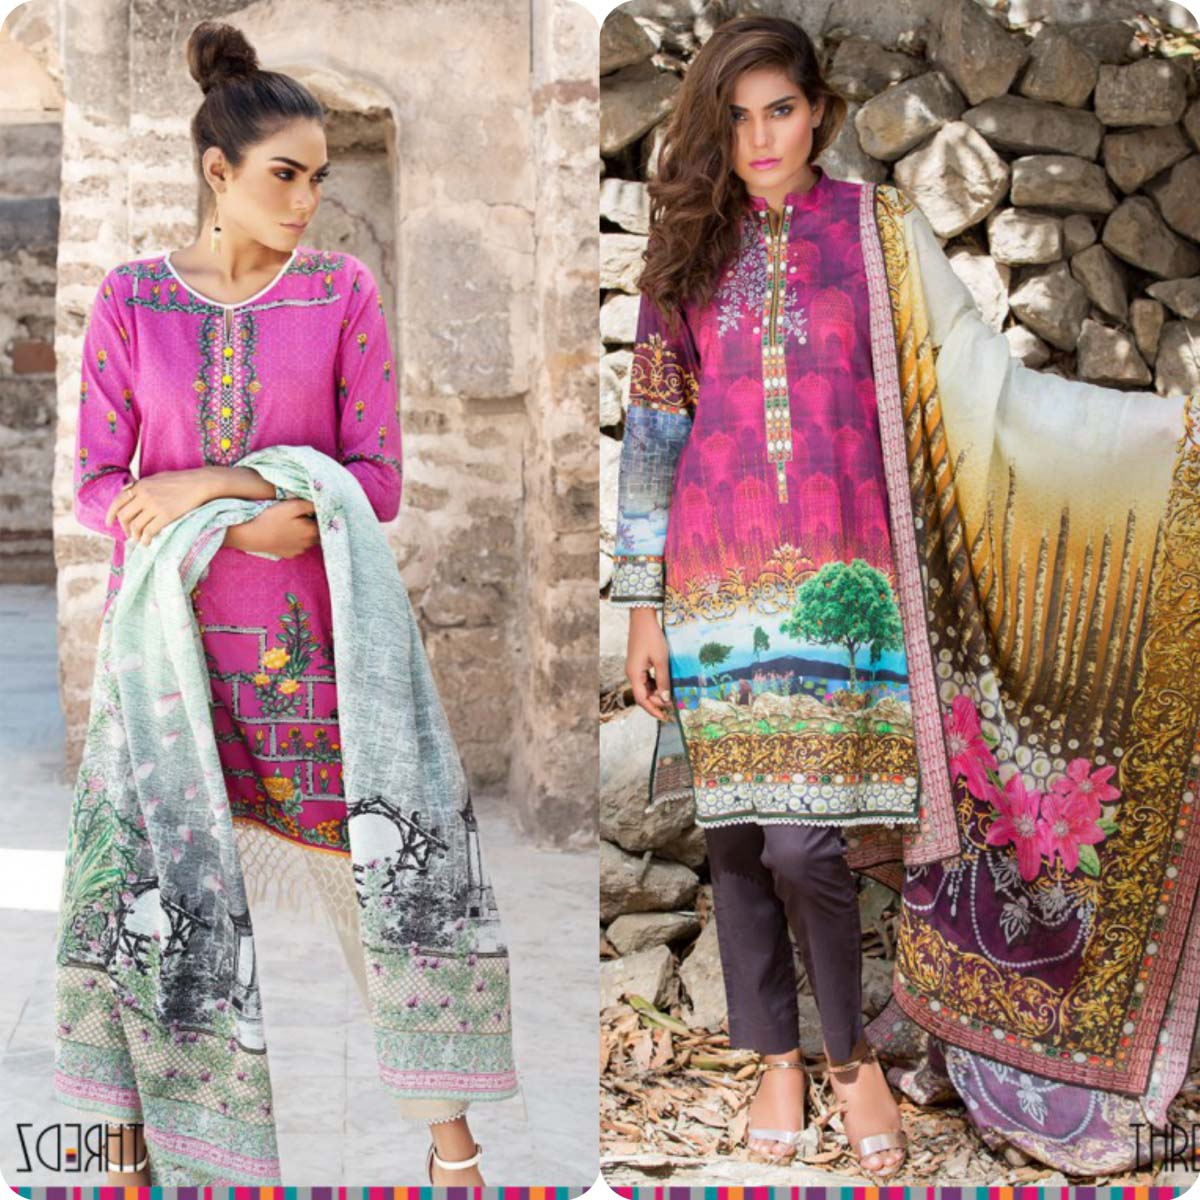 Stylish Embroidered Eid KurtisTunics for Girls By THREDZ 2016-2016 Complete Look-Book (5)